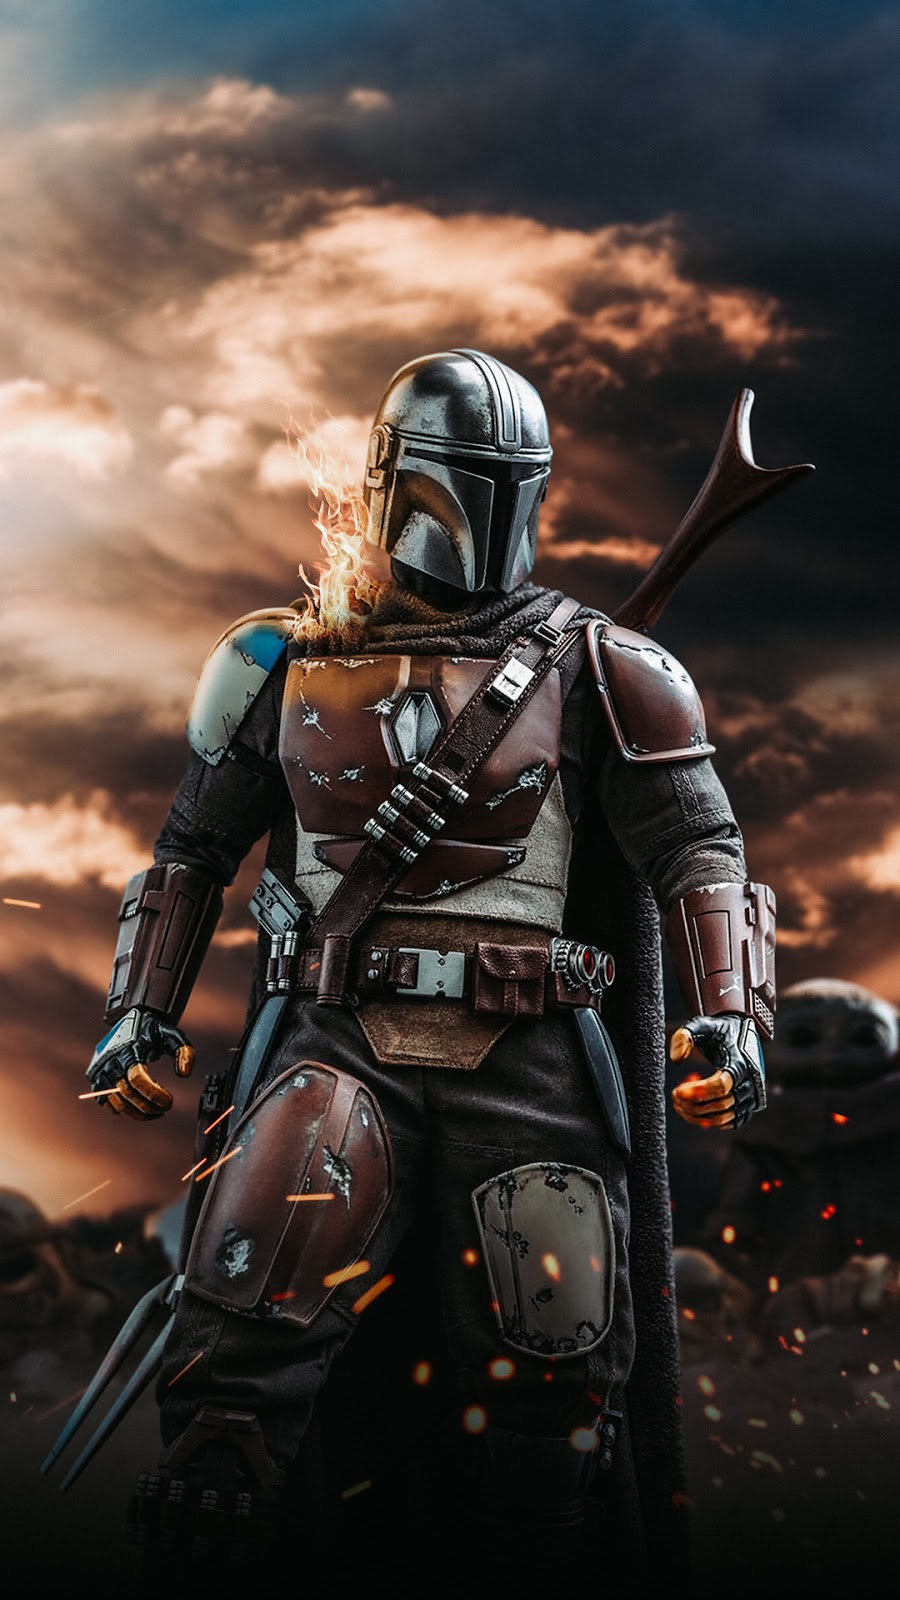 The Mandalorian Background Wallpapers Heroscreen Cool Wallpapers